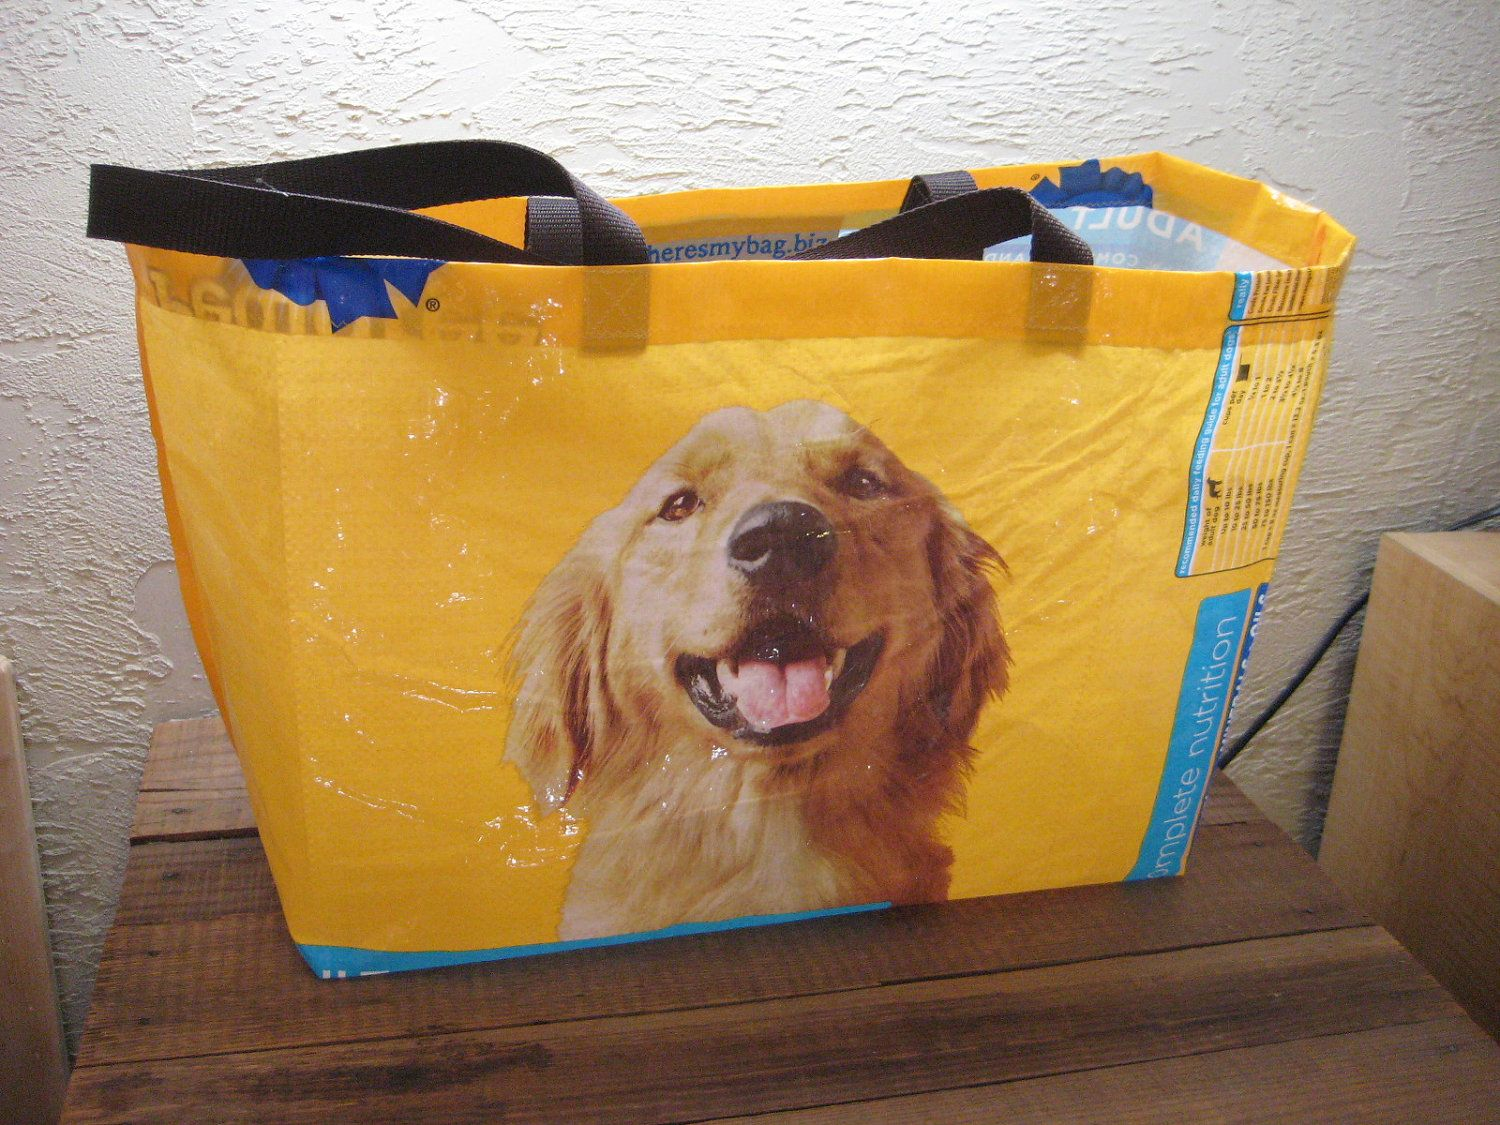 Download Recycled Upcycled Reusable Extra Large Dog Food Market Tote Bag Purse I Think This Idea Would Be Awesome For Diy Grocery Bags Plastic Bag Crafts Feed Bags